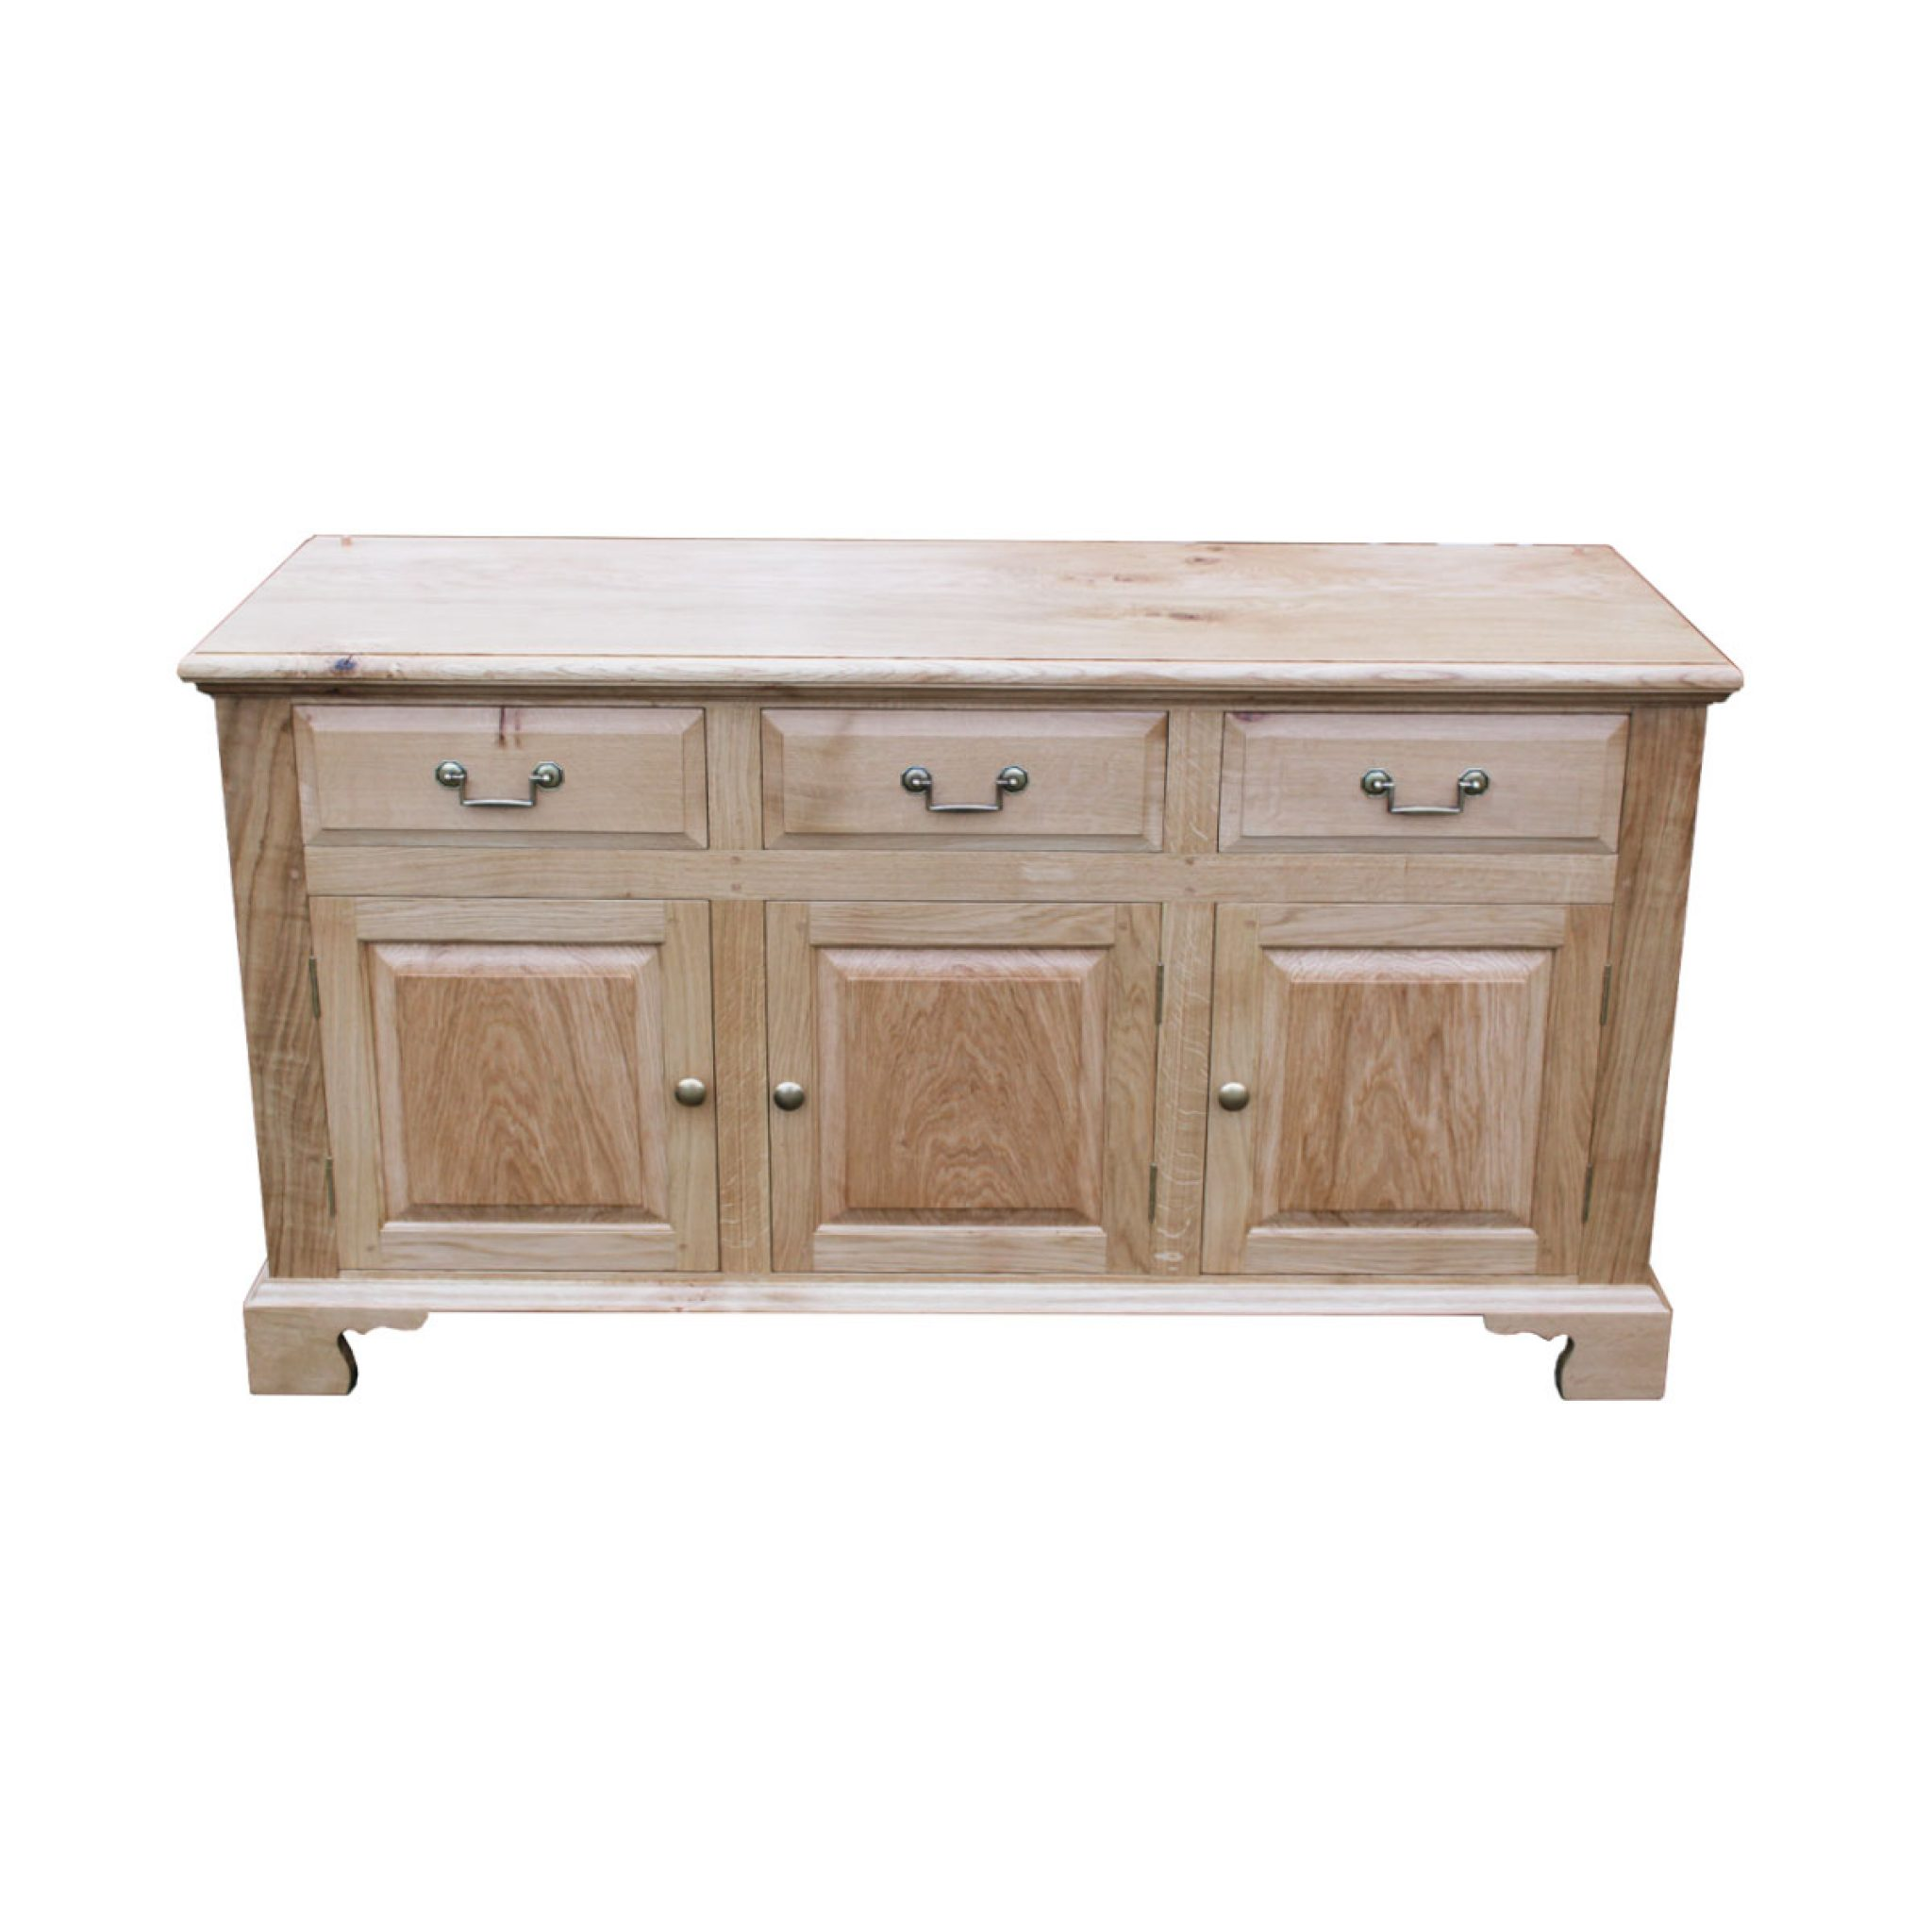 Handmade Oak Furniture Newmarket